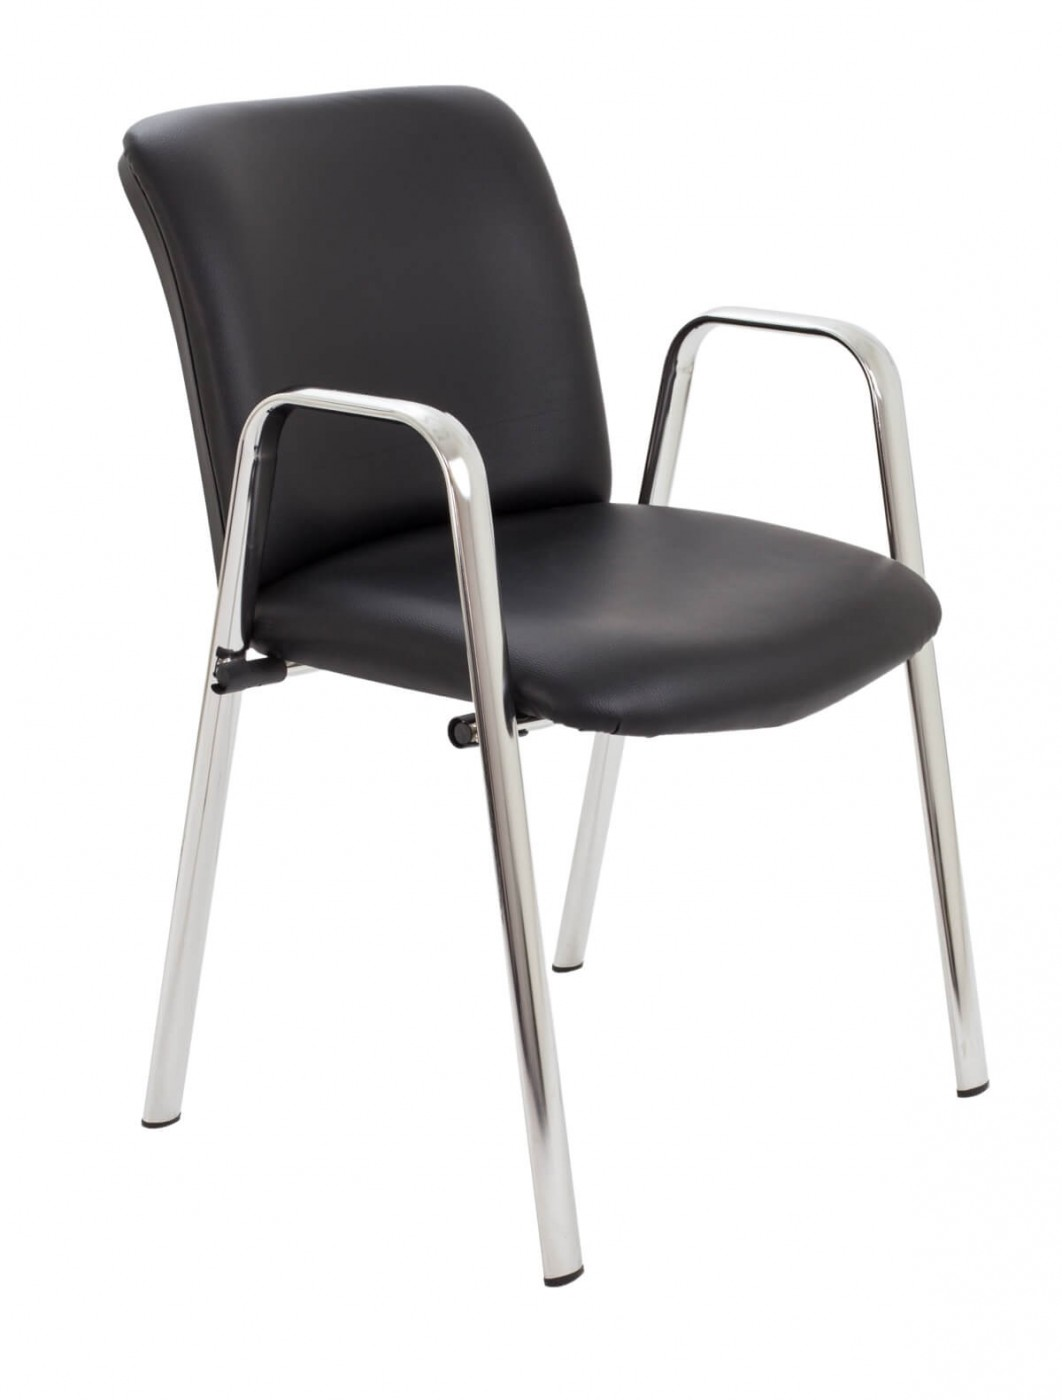 Meeting Chair - Pavilion Conference Armchair CH0529